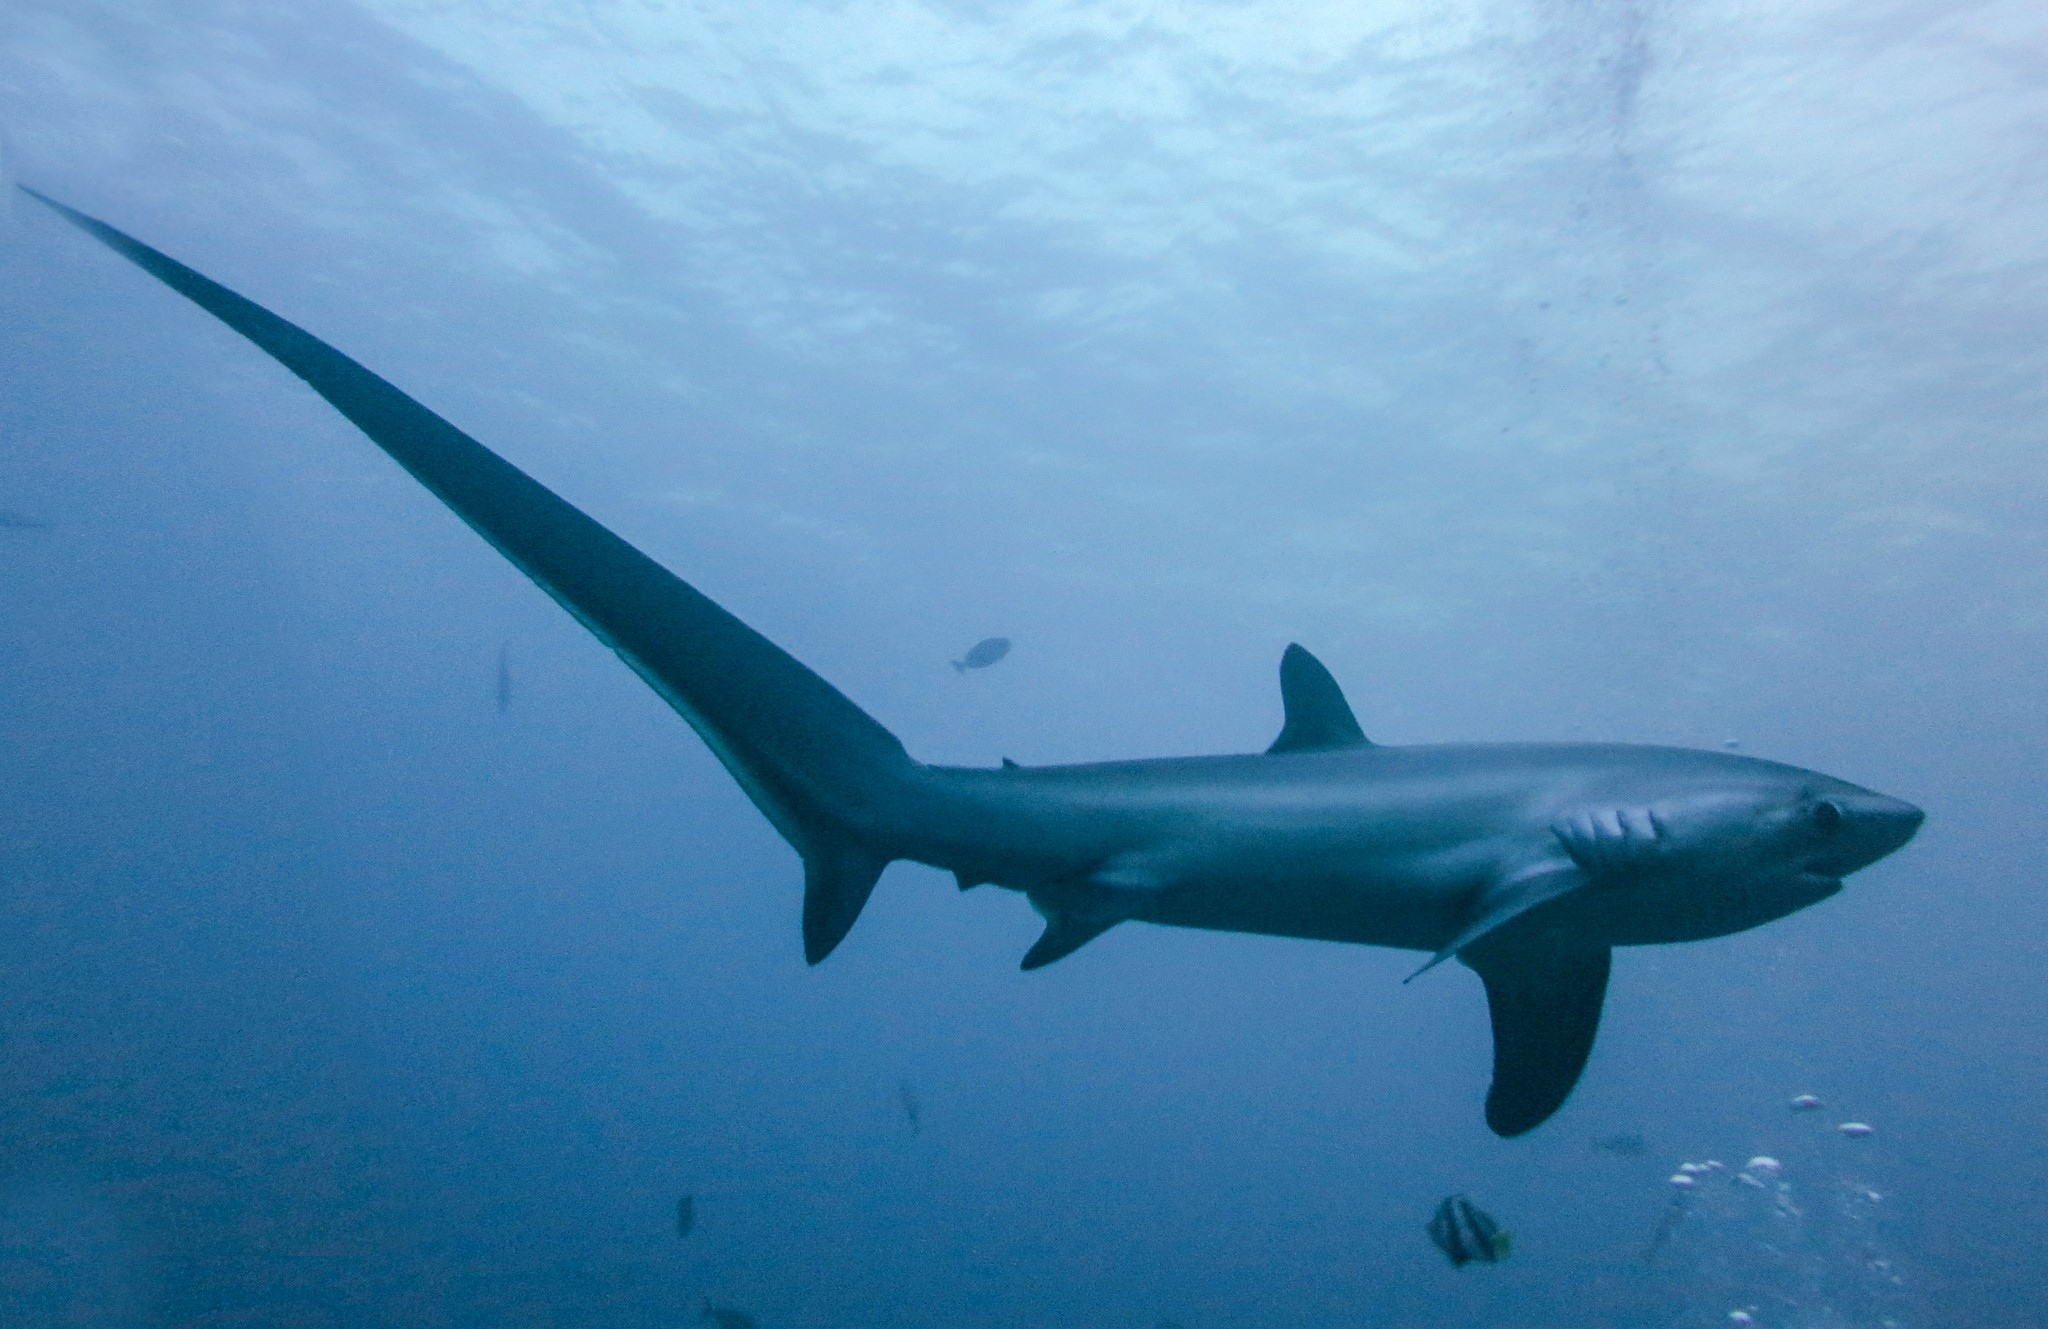 A thresher shark, another CITES Appendix II-listed shark species, in the Philippines. The long tail is said to be used as weapon to slap and stun fish, making them easy prey.